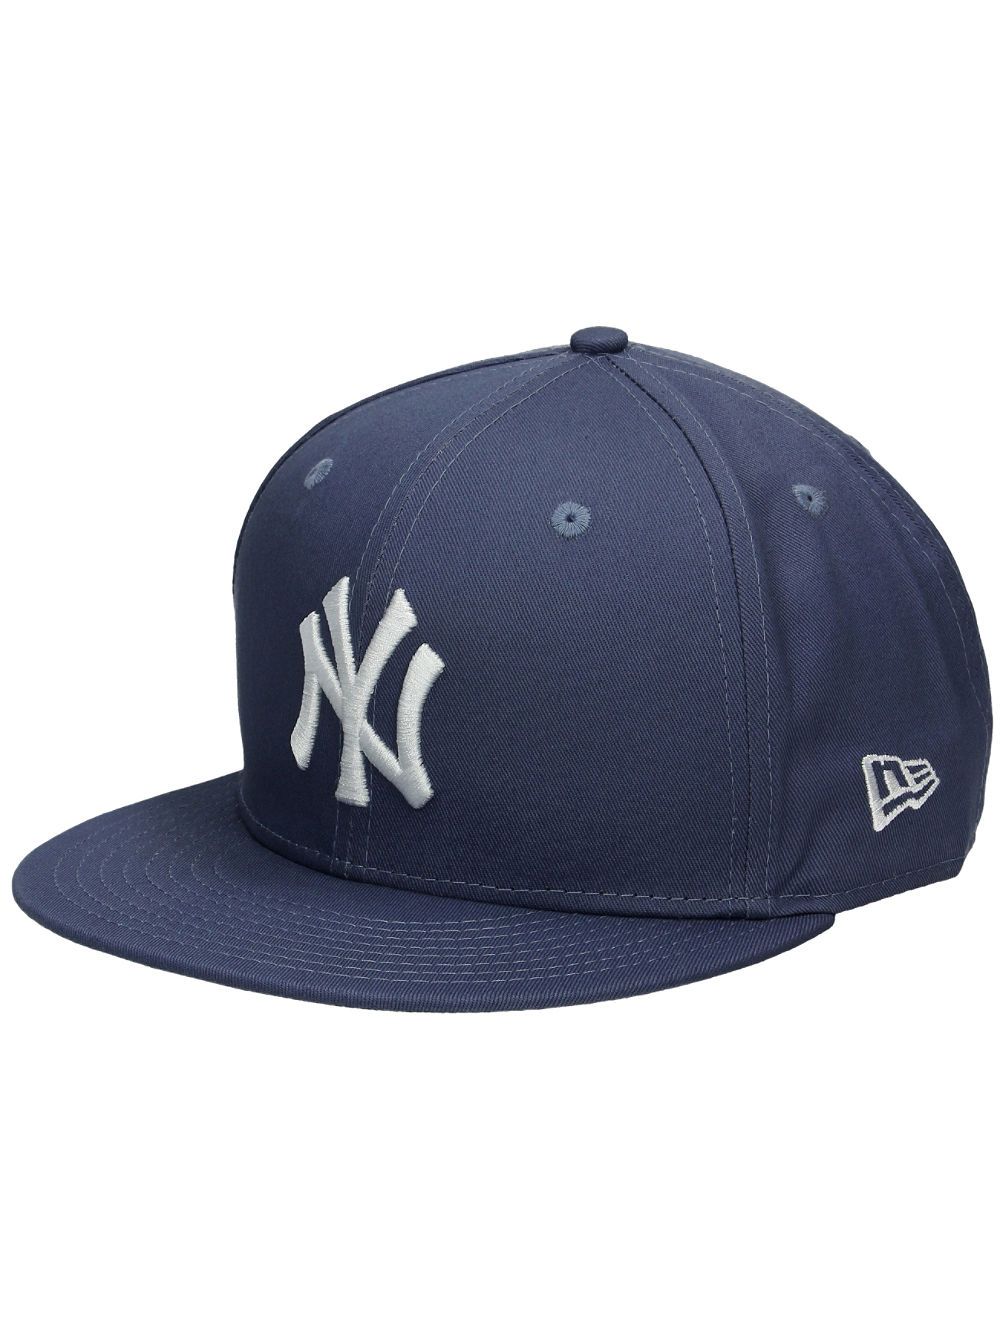 MLB League Essential 950 Cap